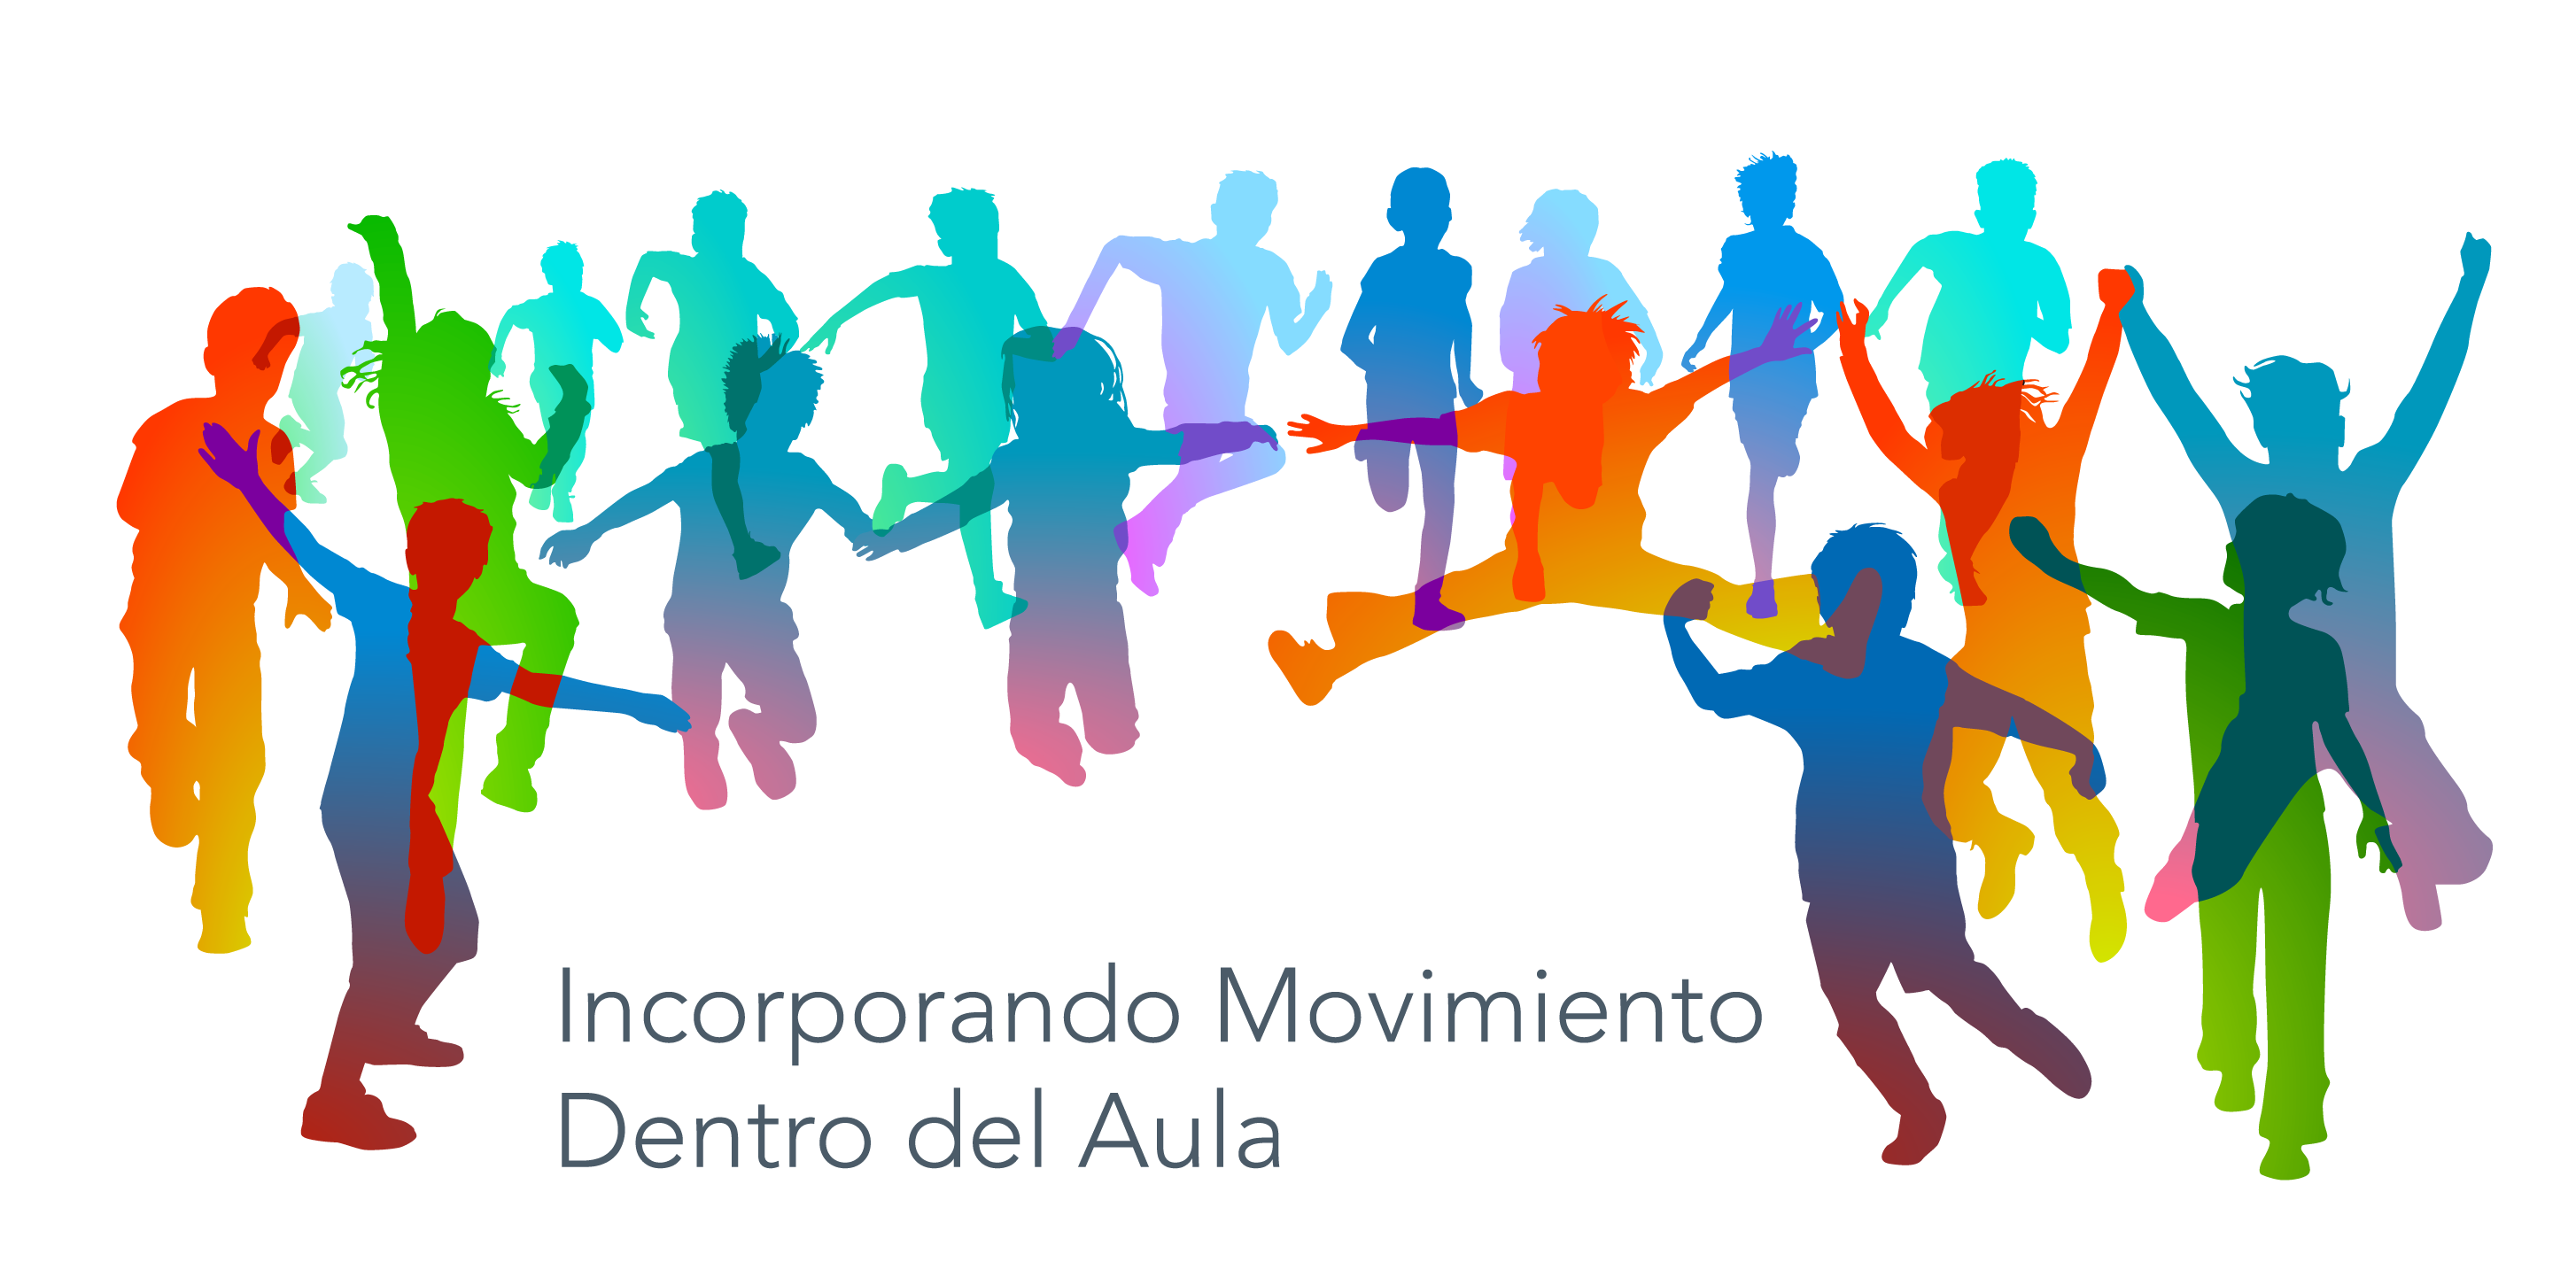 Incorporando Movimiento Dentro Del Aula